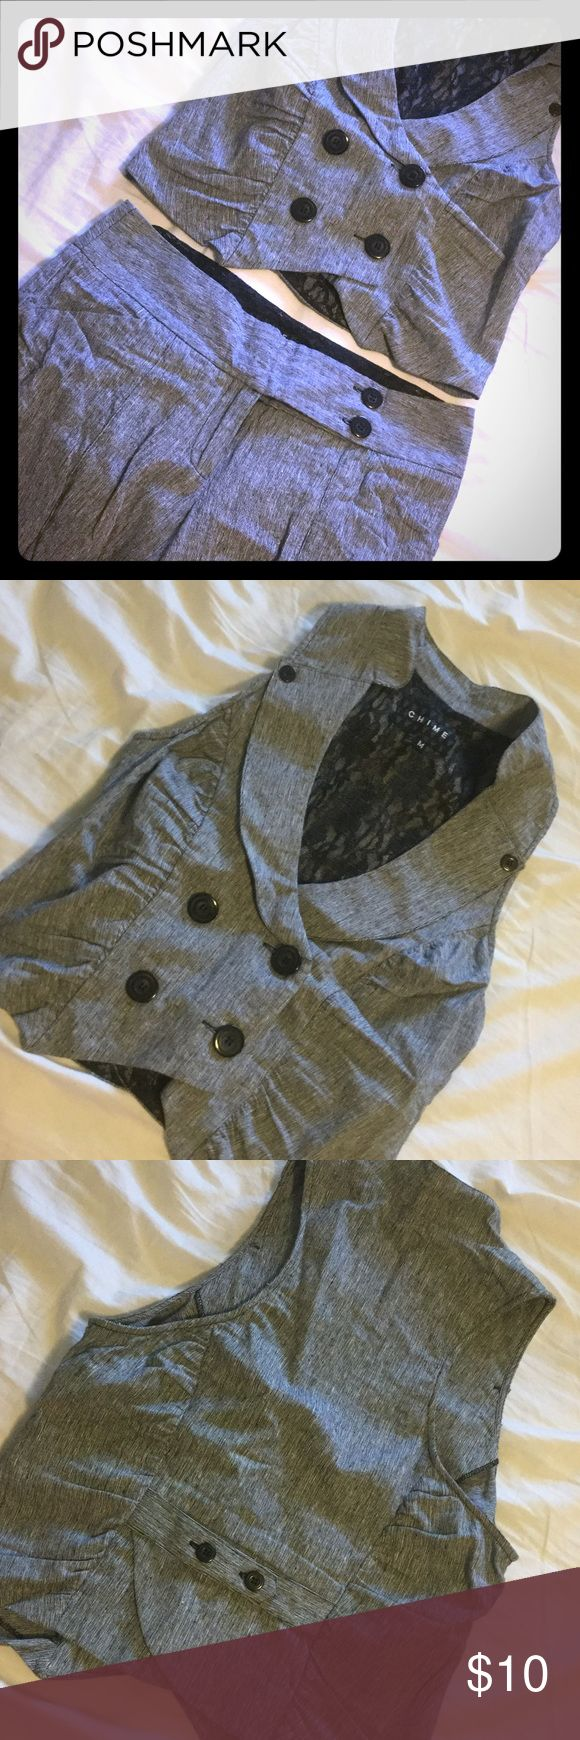 Matching vest & Bermuda short suit Gray vest and short suit. Vest is cropped and shorts are Bermuda length. Thick material. Very flattering. Size M vest, size 7 shorts. Chime Other